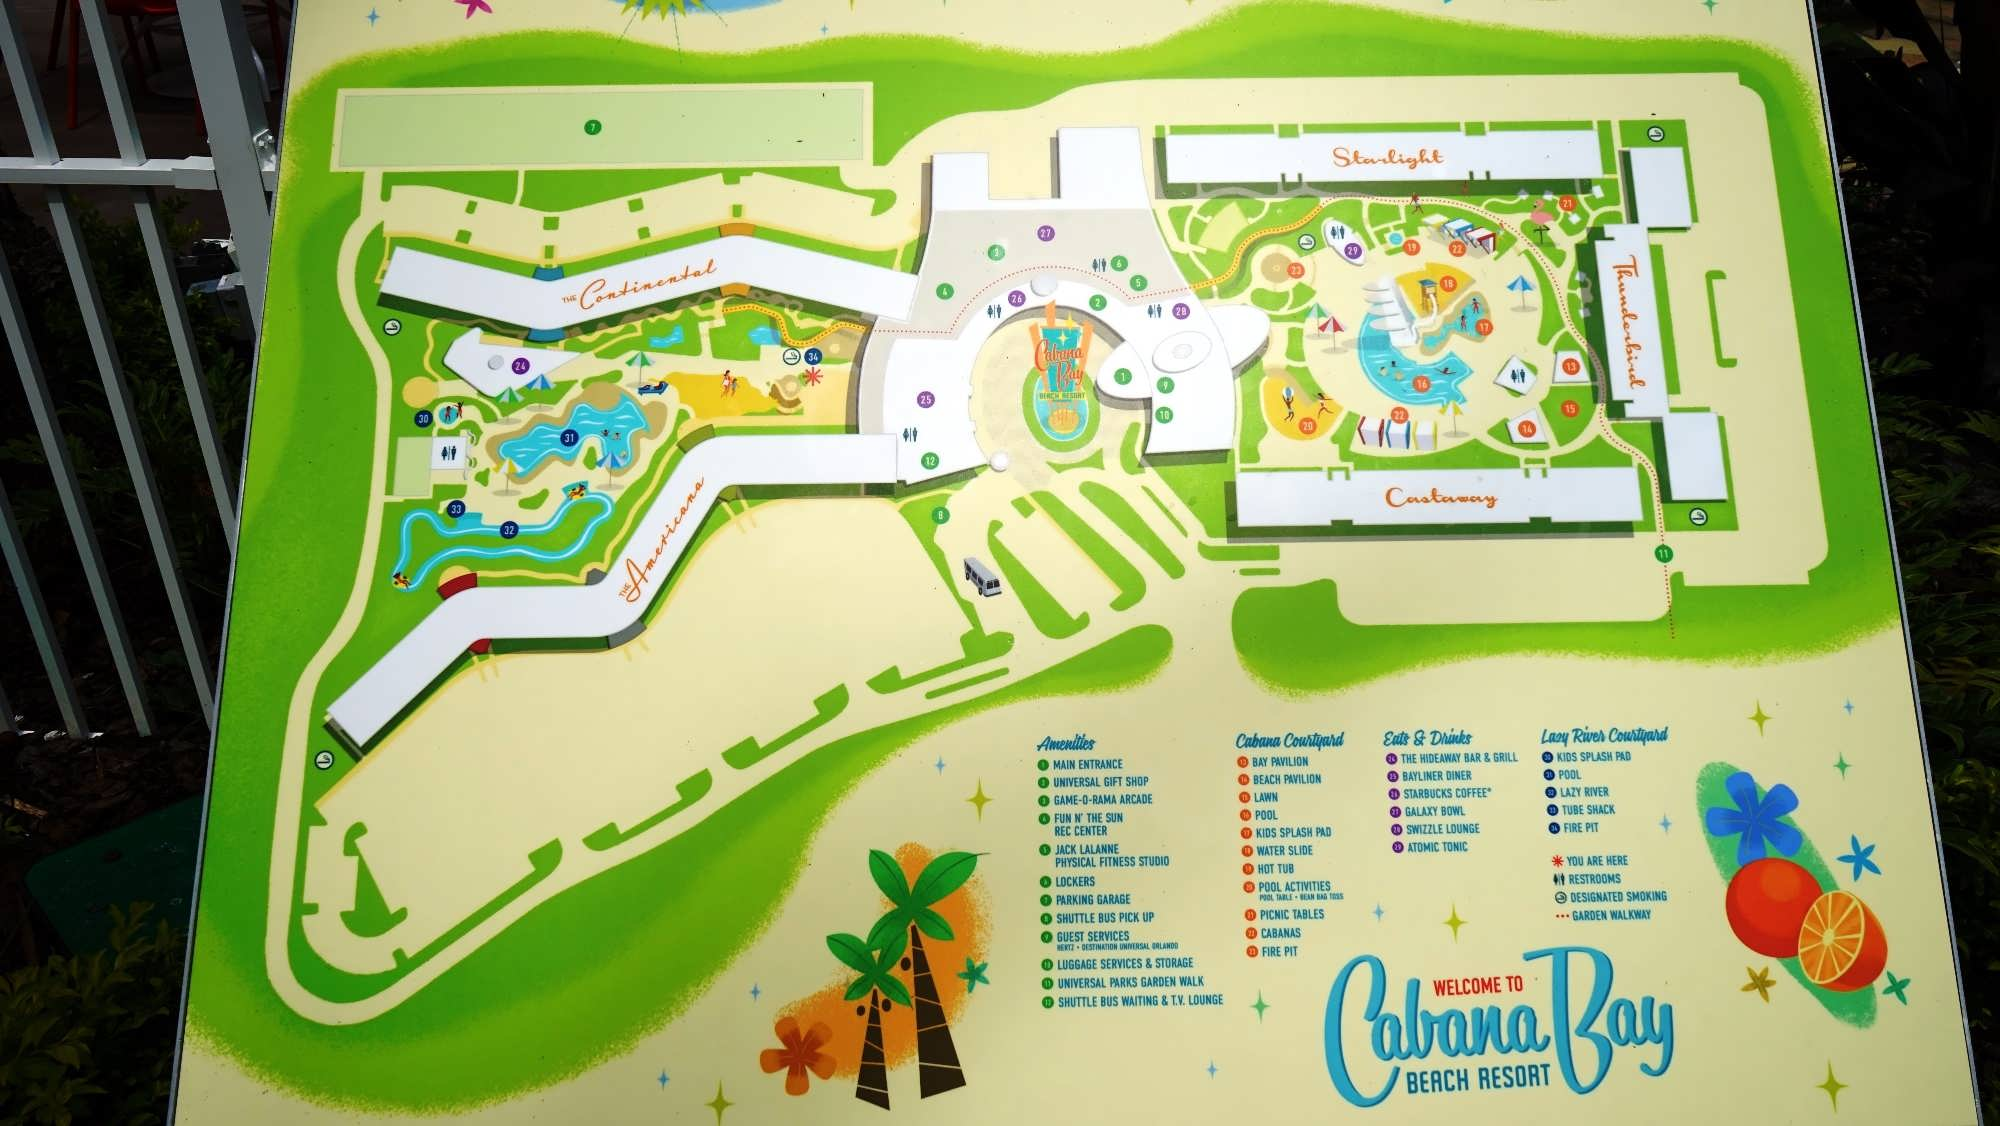 Cabana Bay Beach Resort: Pool areas - photo gallery, details, & more on